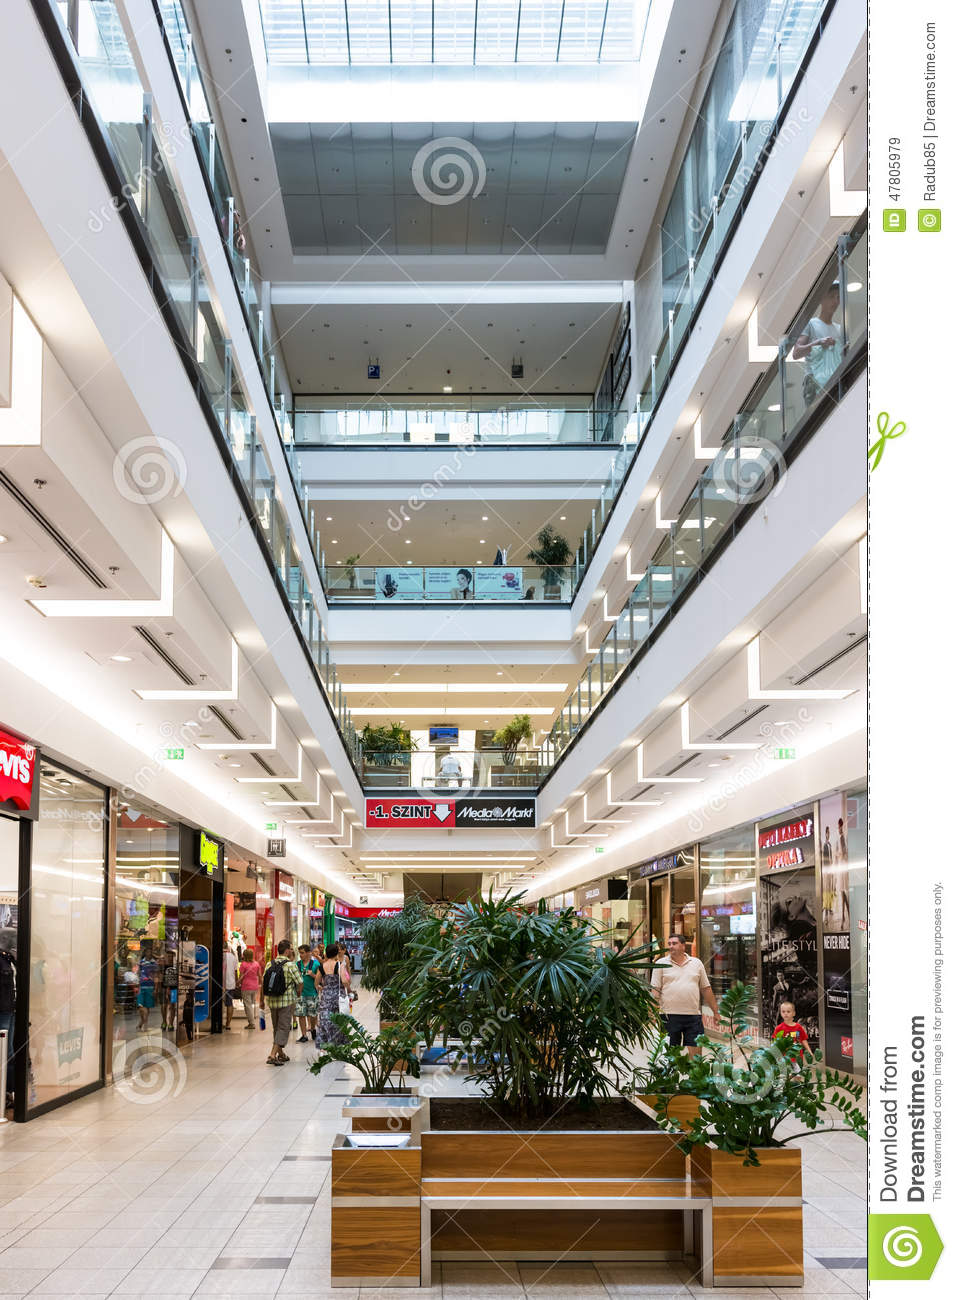 54243f7dd199 DEBRECEN, HUNGARY - AUGUST 26, 2014: Forum Debrecen Shopping Mall, one of  the biggest shopping mall in town is located downtown the historical center  of ...